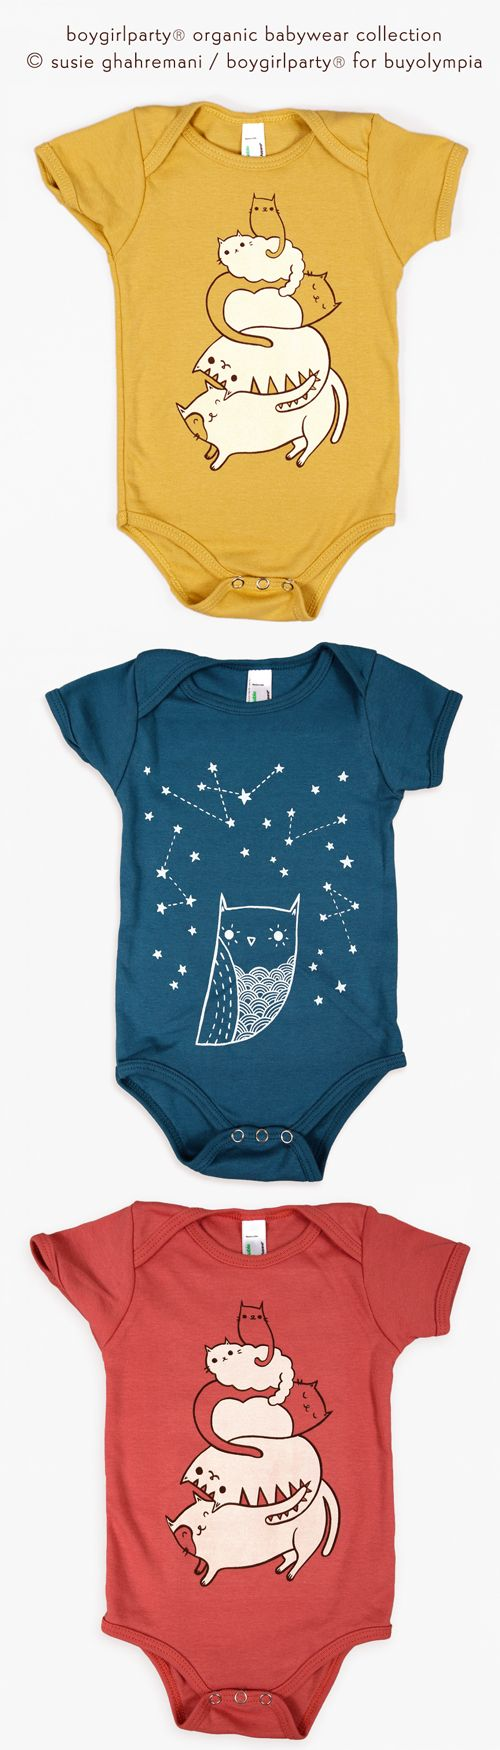 Shop for baby wear and other clothing at the boygirlparty shop http://shop.boygirlparty.com #baby #clothing